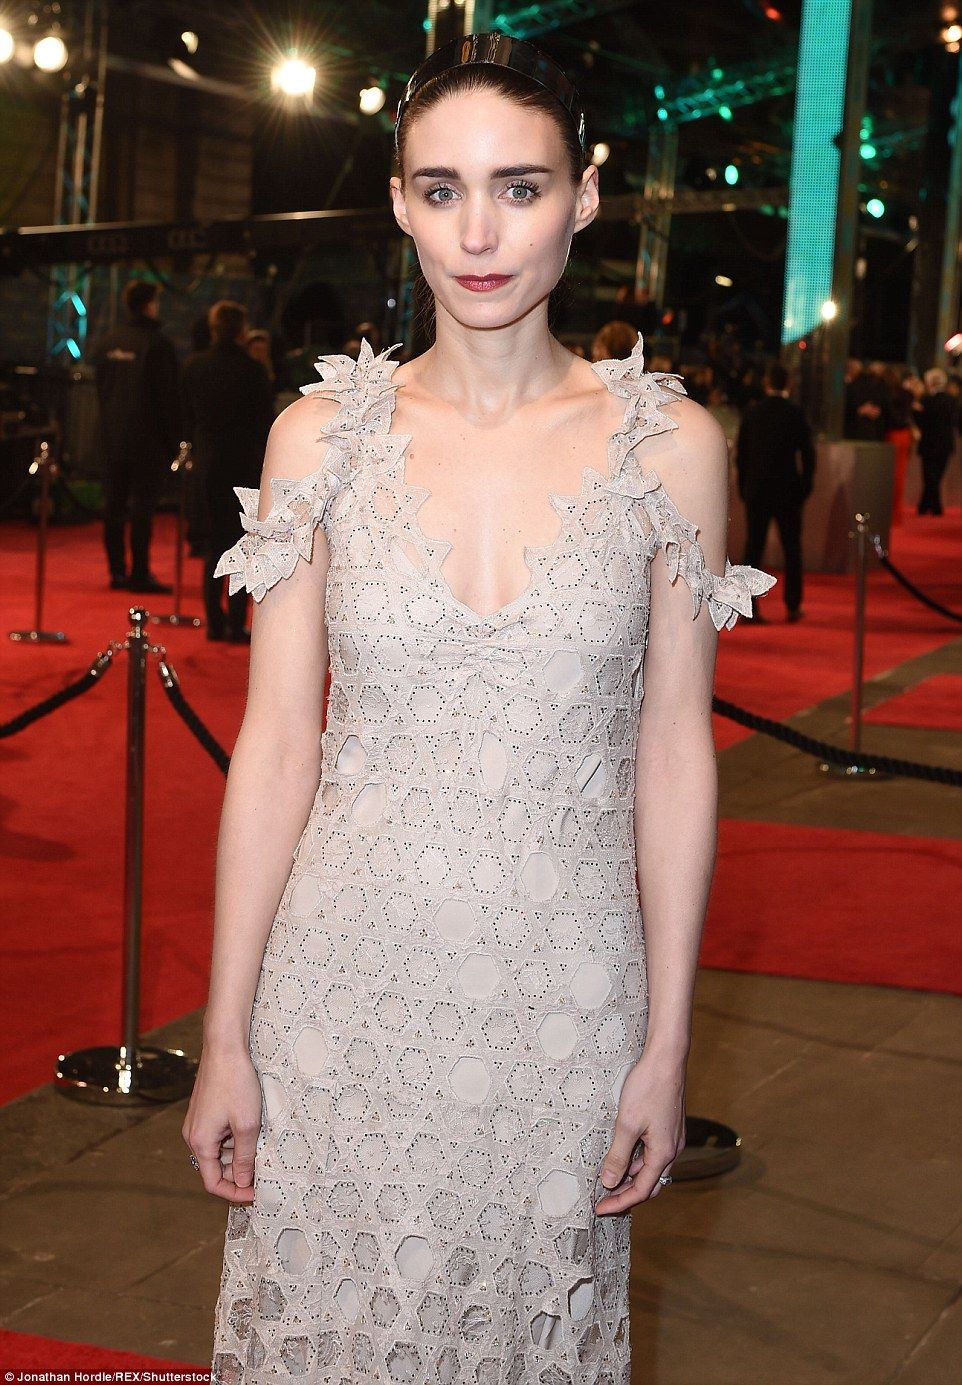 Rooney Mara wears Givenchy Couture to the BAFTAs 2016